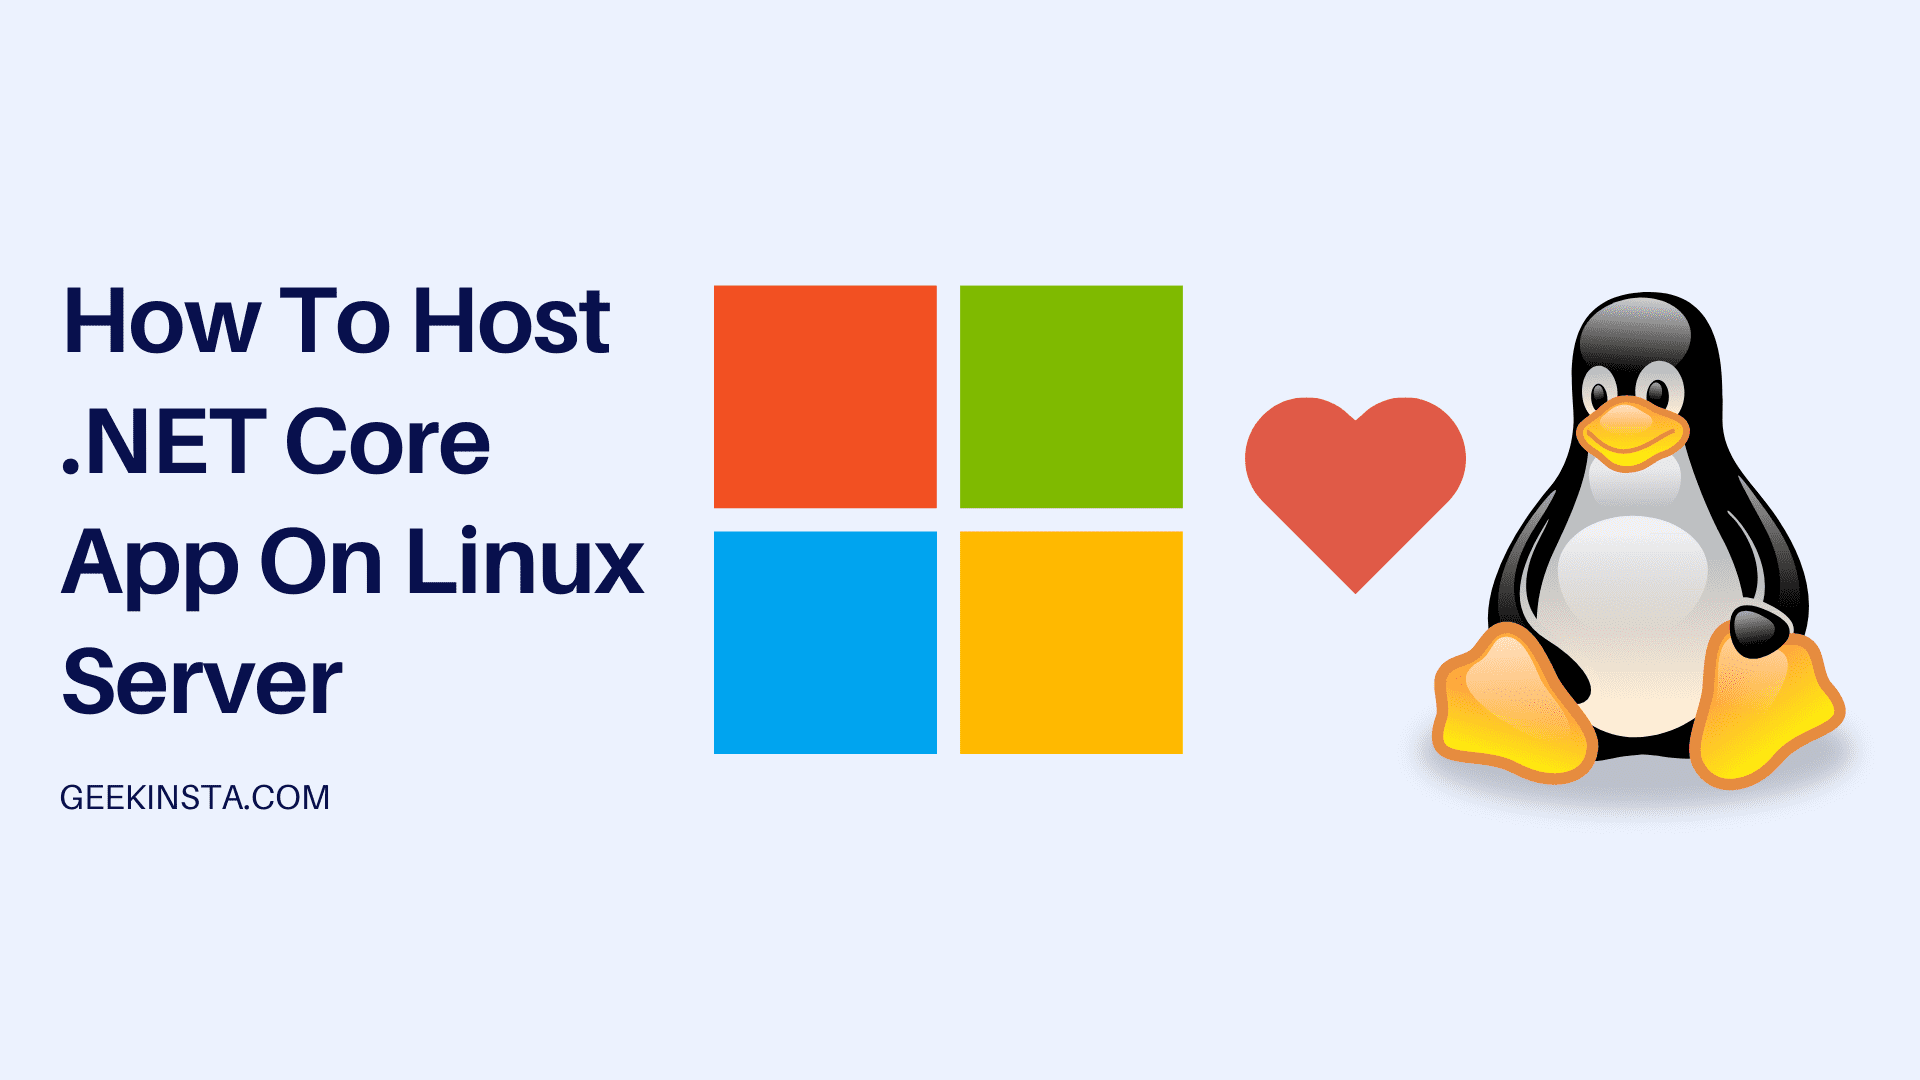 Host ASP .NET Core app on Linux server